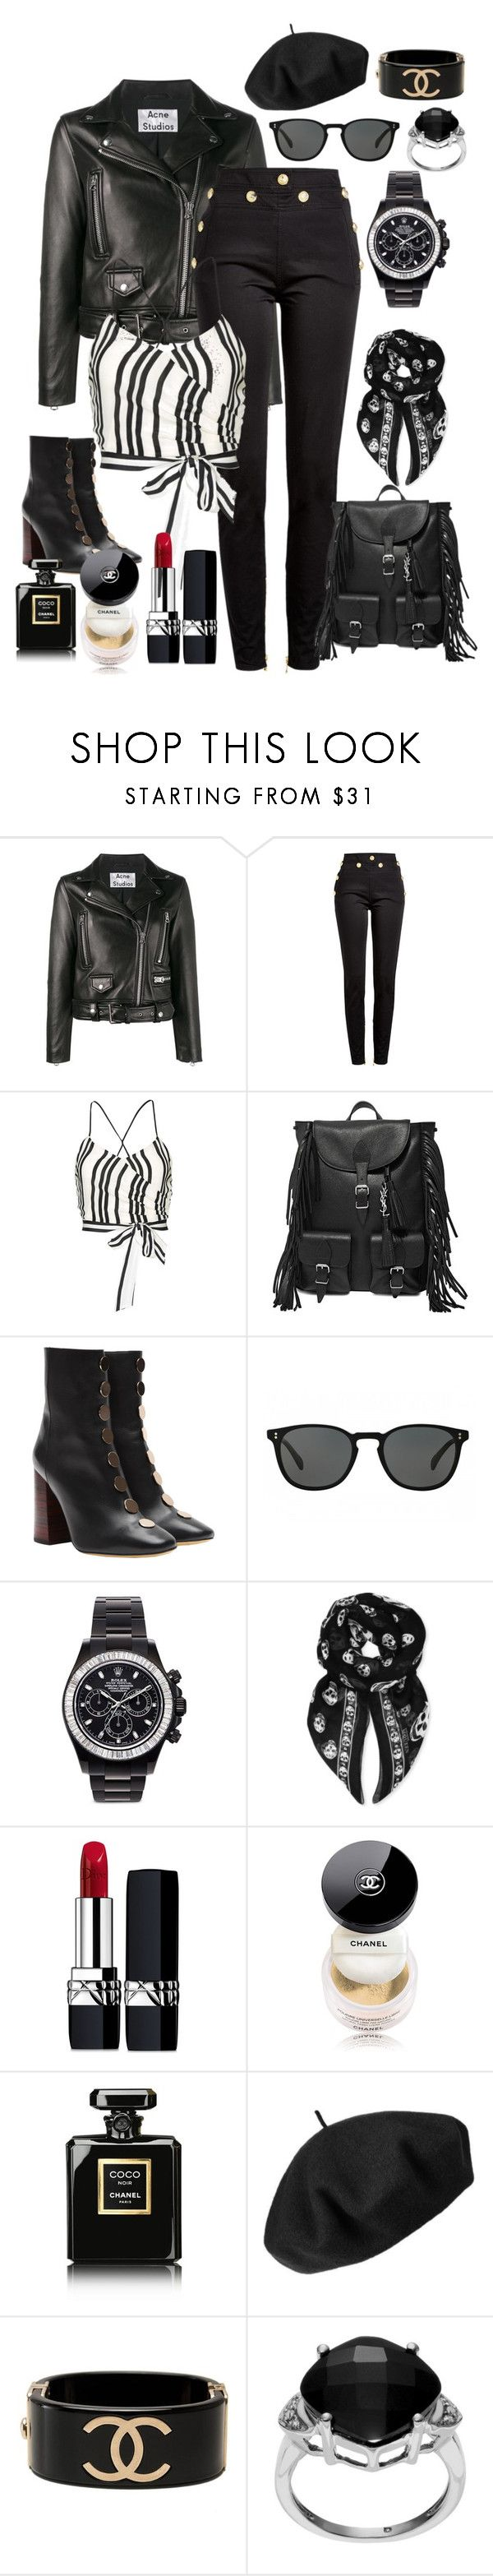 """Monochrome"" by risalba on Polyvore featuring Acne Studios, Balmain, Alice + Olivia, Yves Saint Laurent, E L L E R Y, Oliver Peoples, Mad Collections, Alexander McQueen, Christian Dior and Chanel"